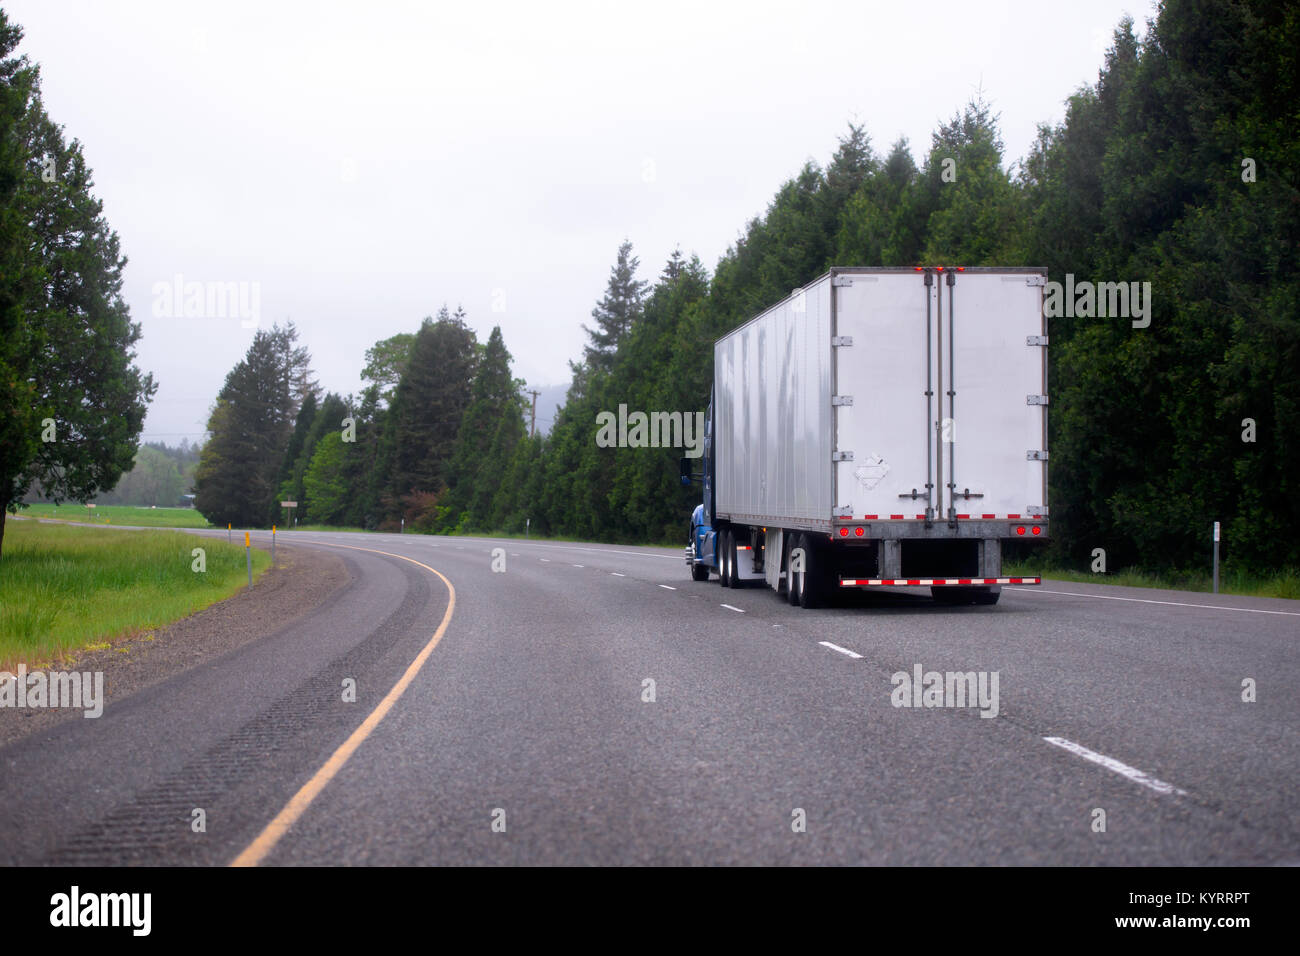 A big rig semi truck with a dry van trailer for long haul freight turn on winding highway with evergreen trees on - Stock Image